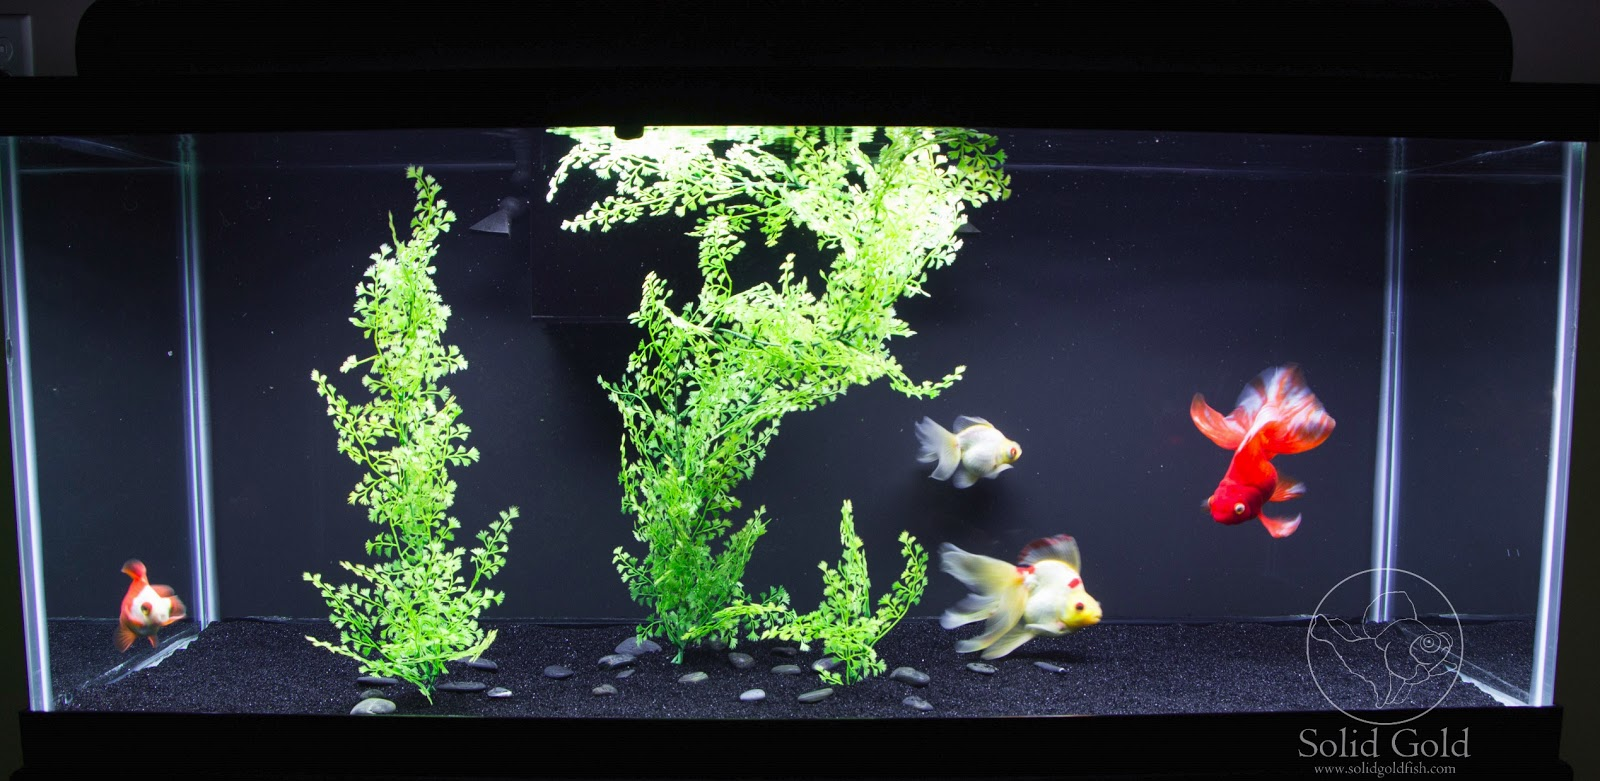 Fish in tank with goldfish - A Simple But Effective Sand Bottom Tank Design